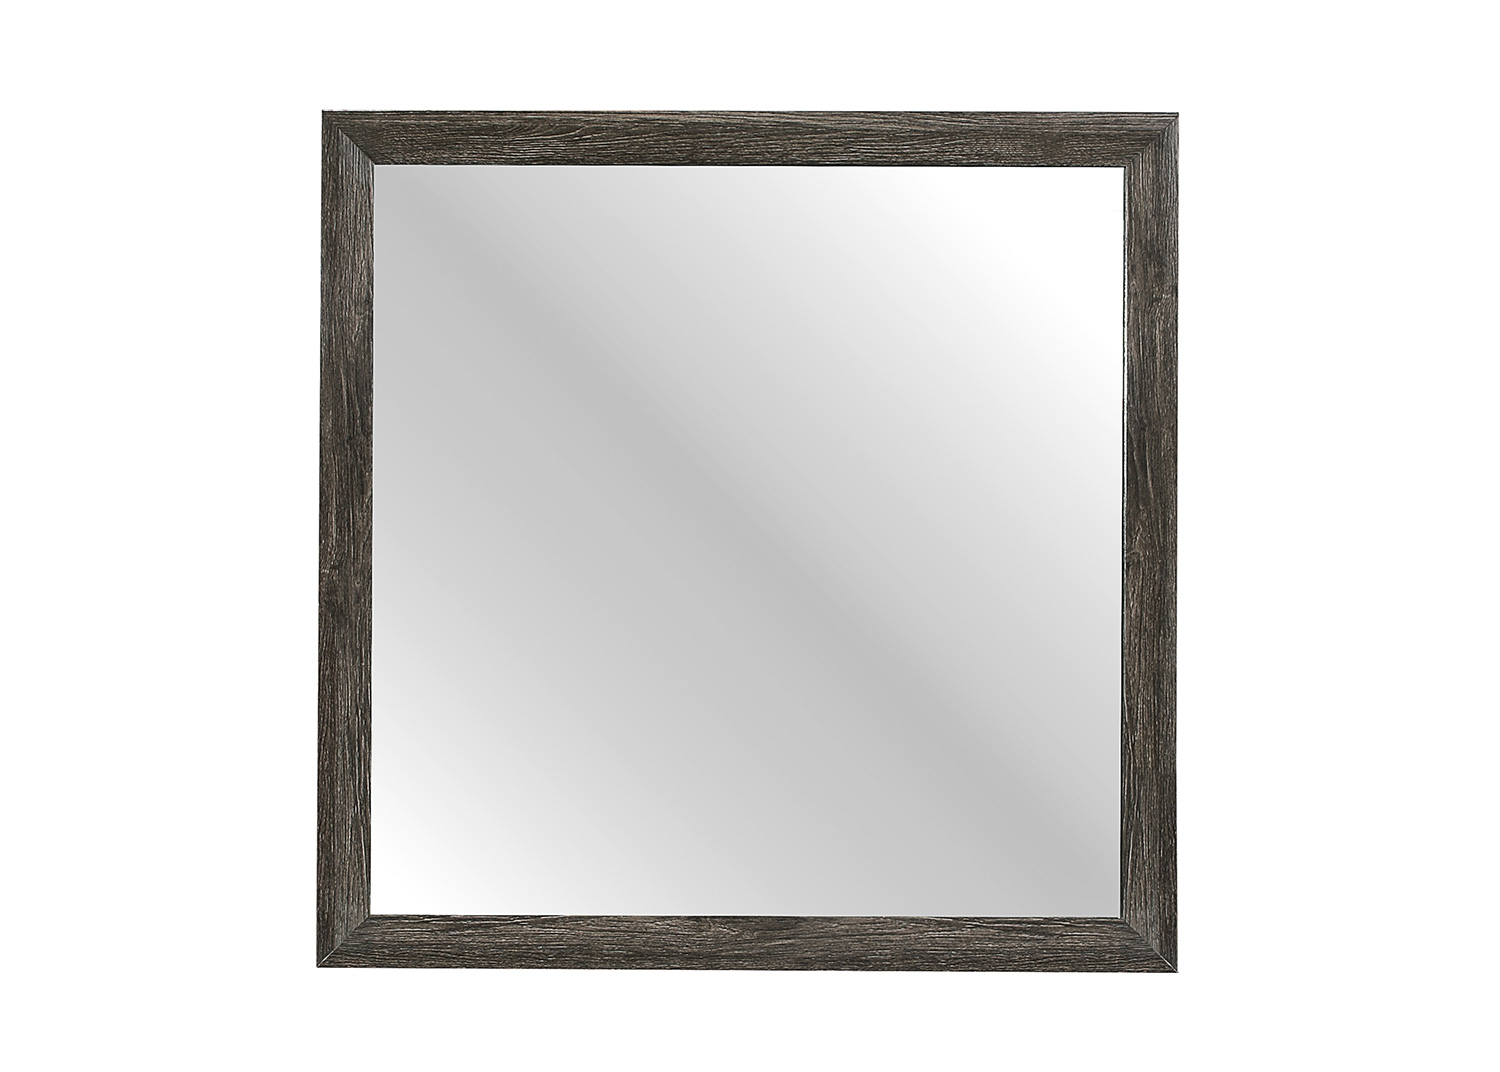 Homelegance Edina Mirror - Brown-Gray